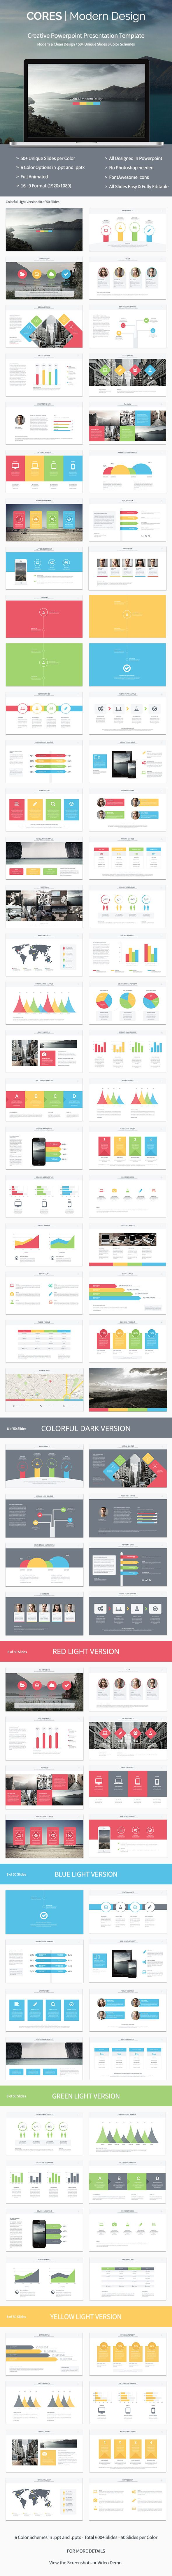 Cores - Powerpoint Presentation Template - Creative PowerPoint Templates